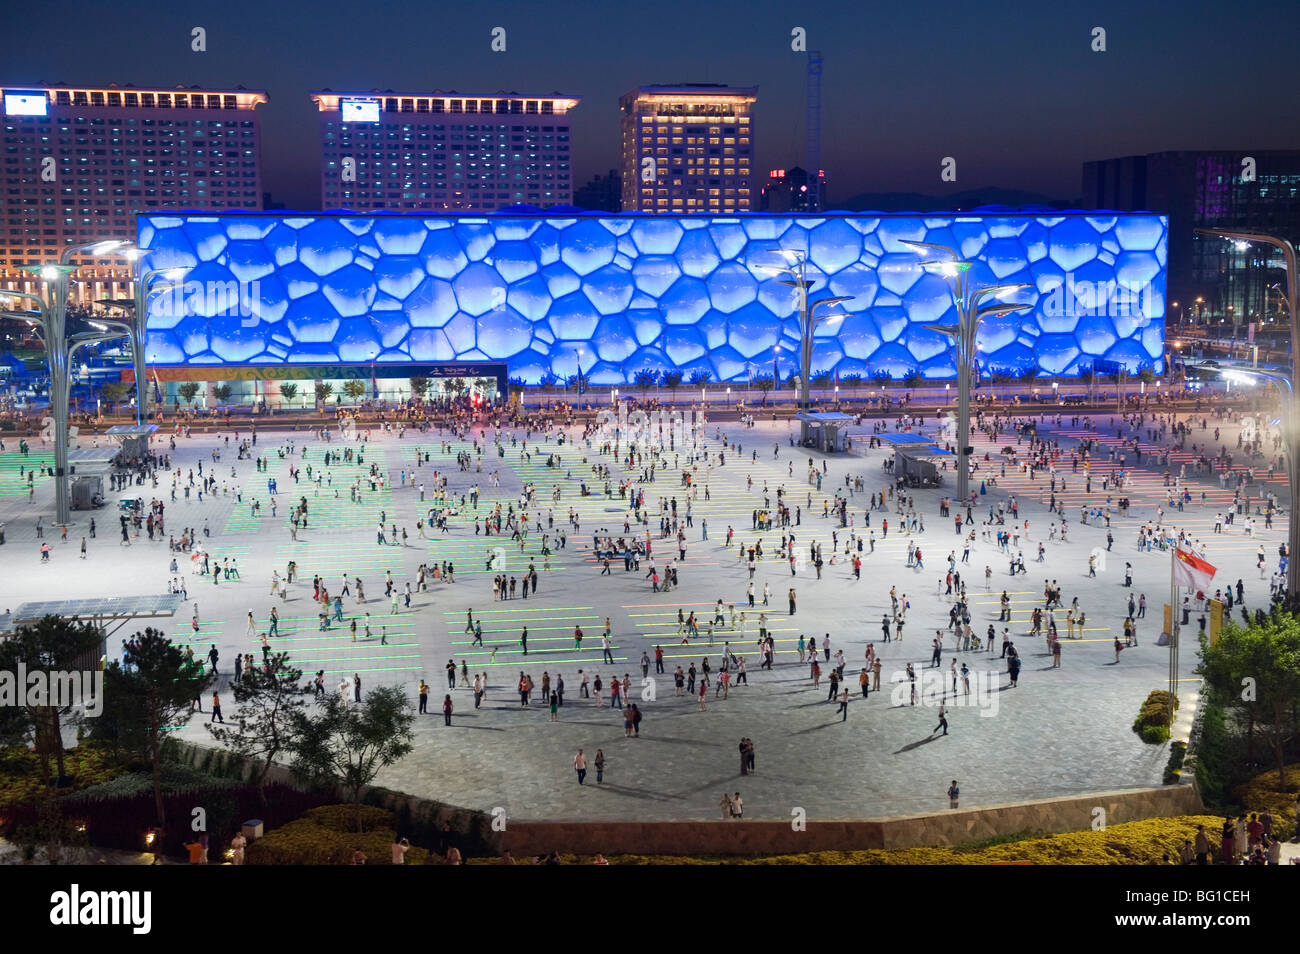 Night view of the Water Cube National Aquatics Center on the Olympic Green, Beijng, China, Asia - Stock Image